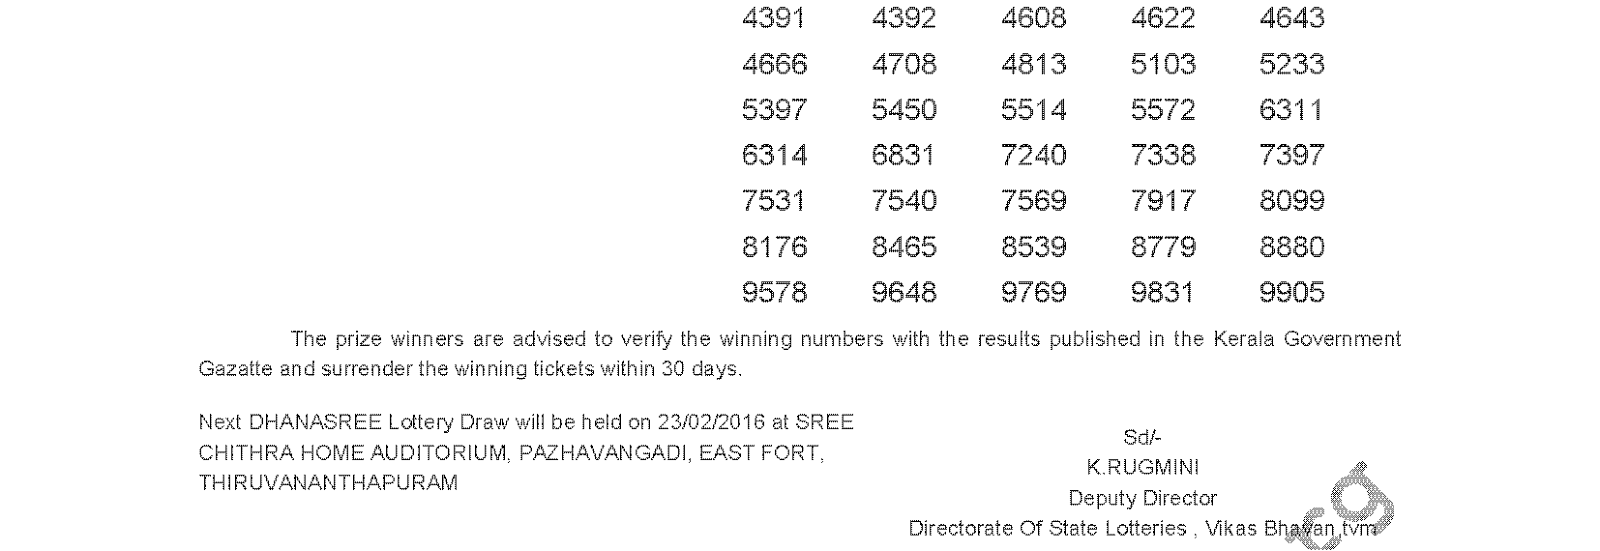 DHANASREE Lottery DS 224 Result 16-02-2016